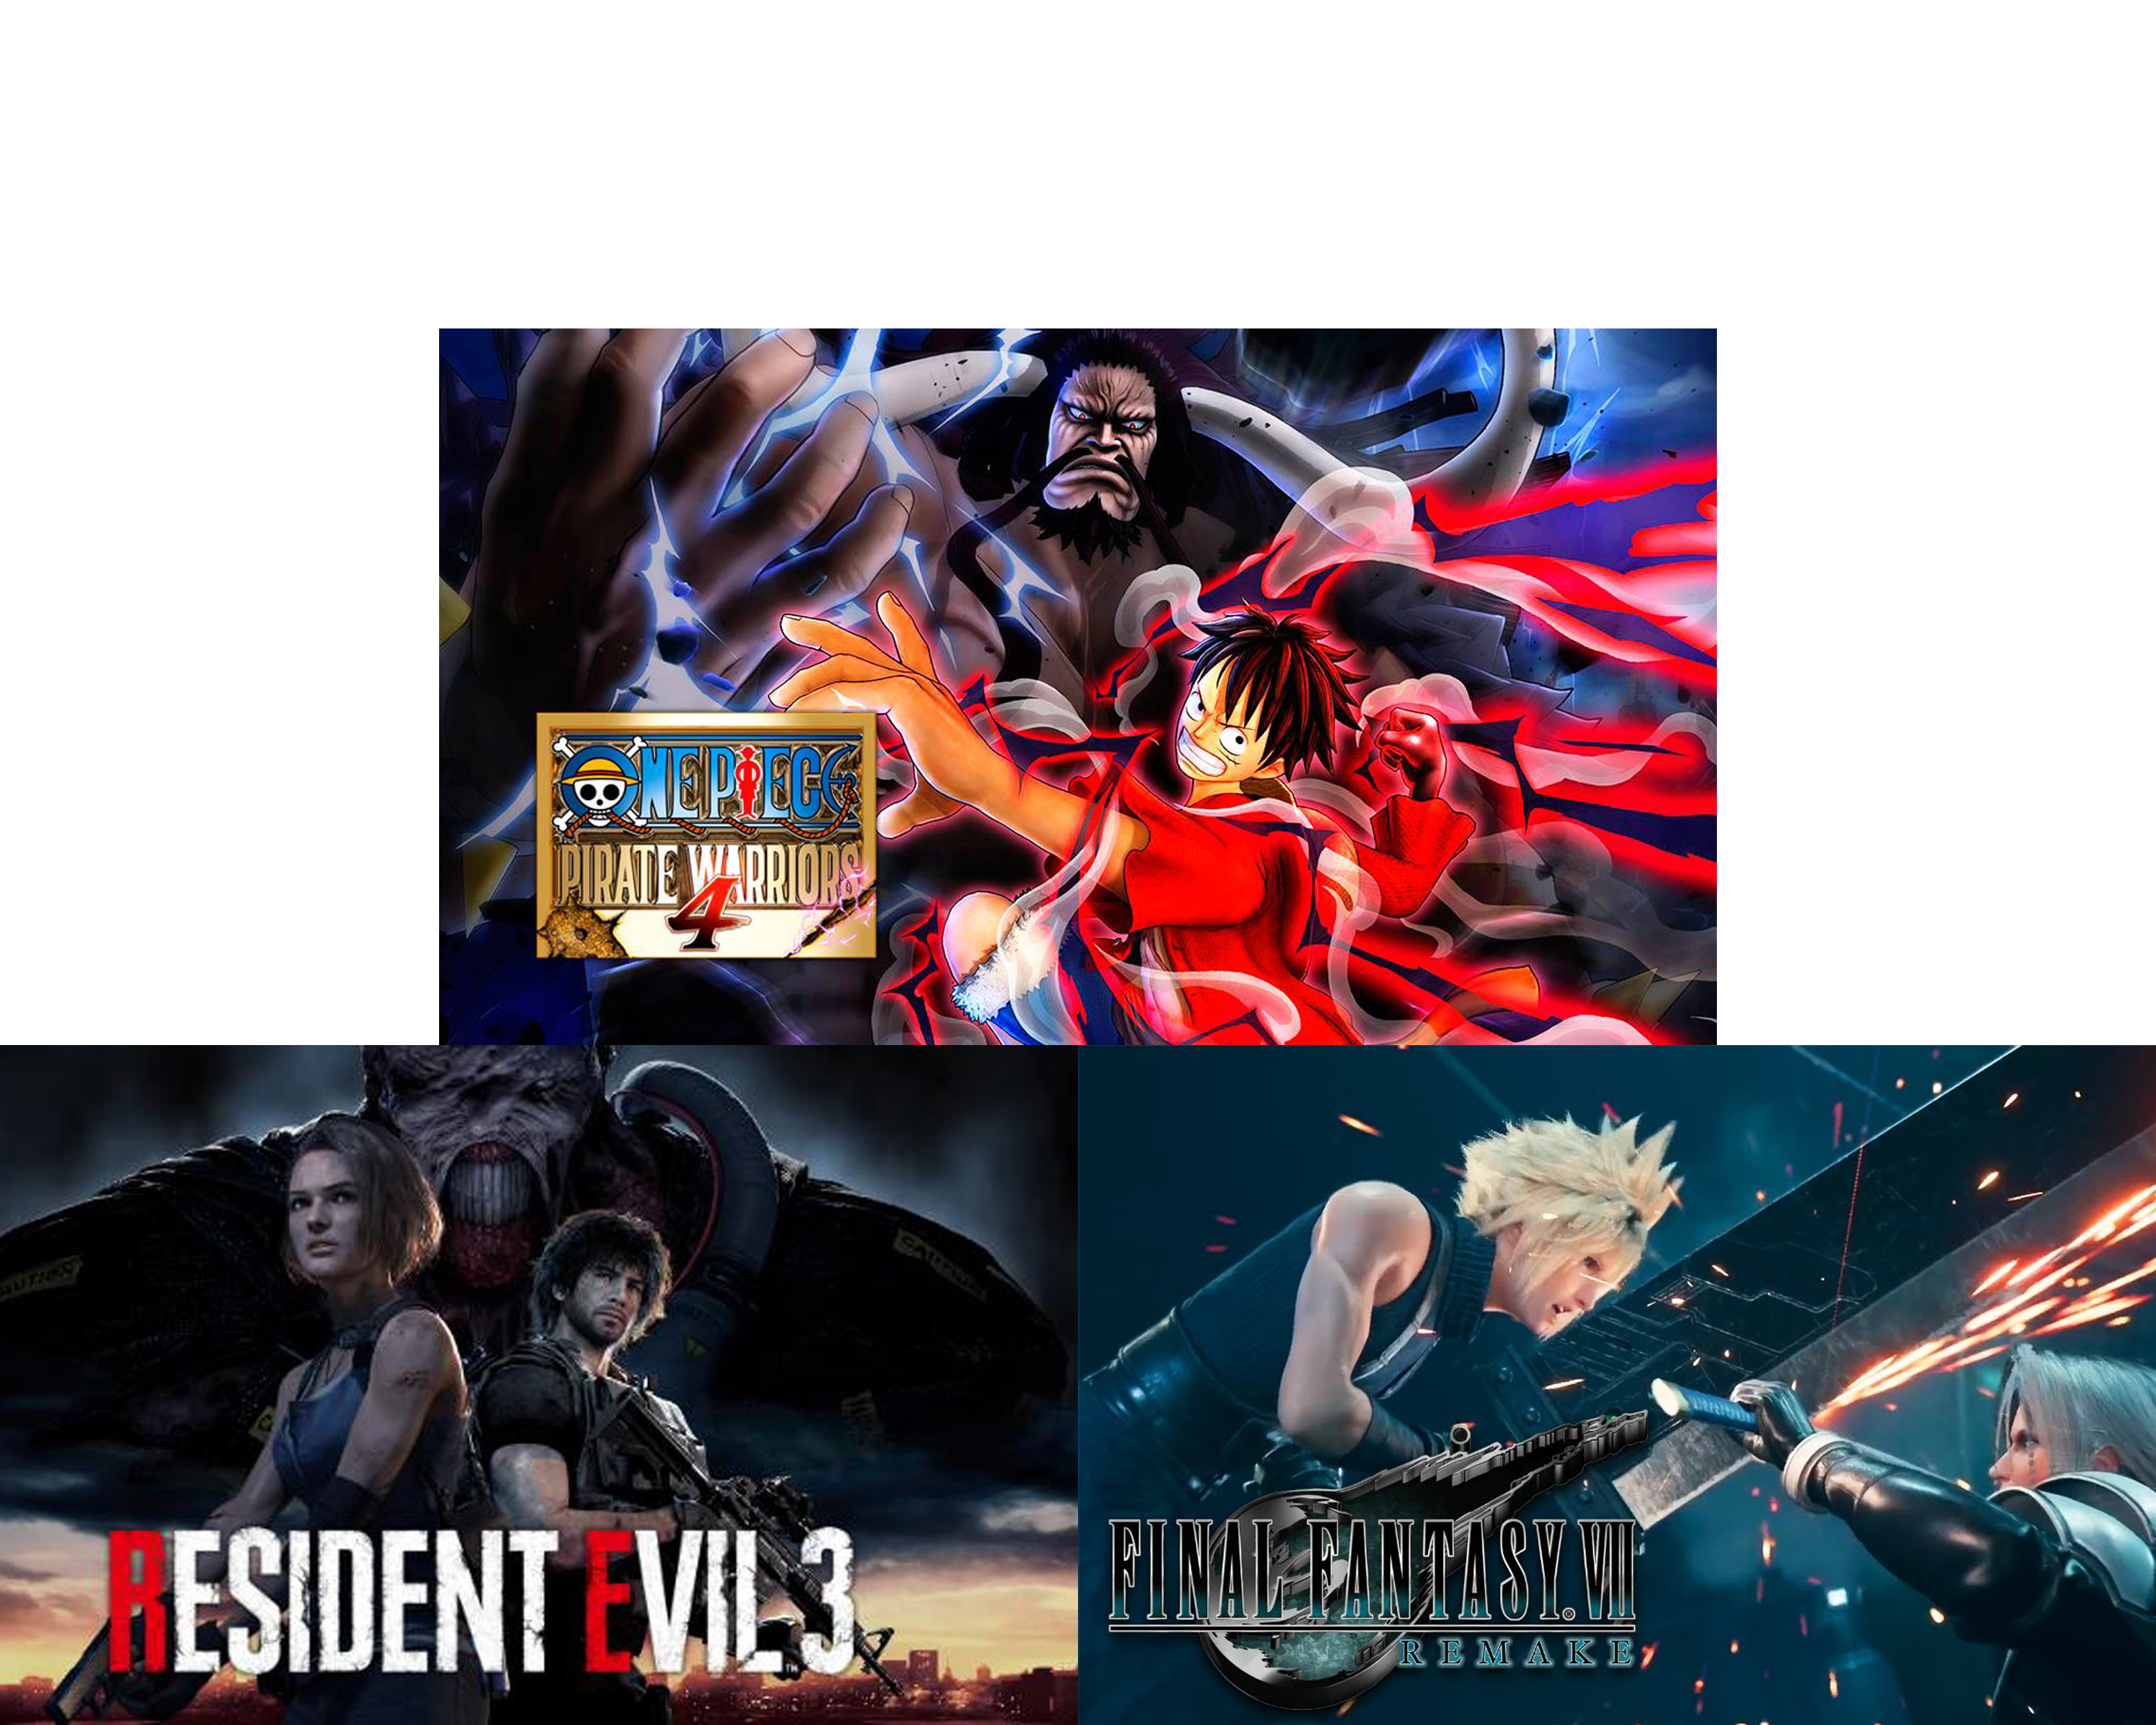 Enter to win one of three games for PC - One Piece Pirate Warriors 4, Resident Evil 3 or Final Fantasy VII. Giveaway Image